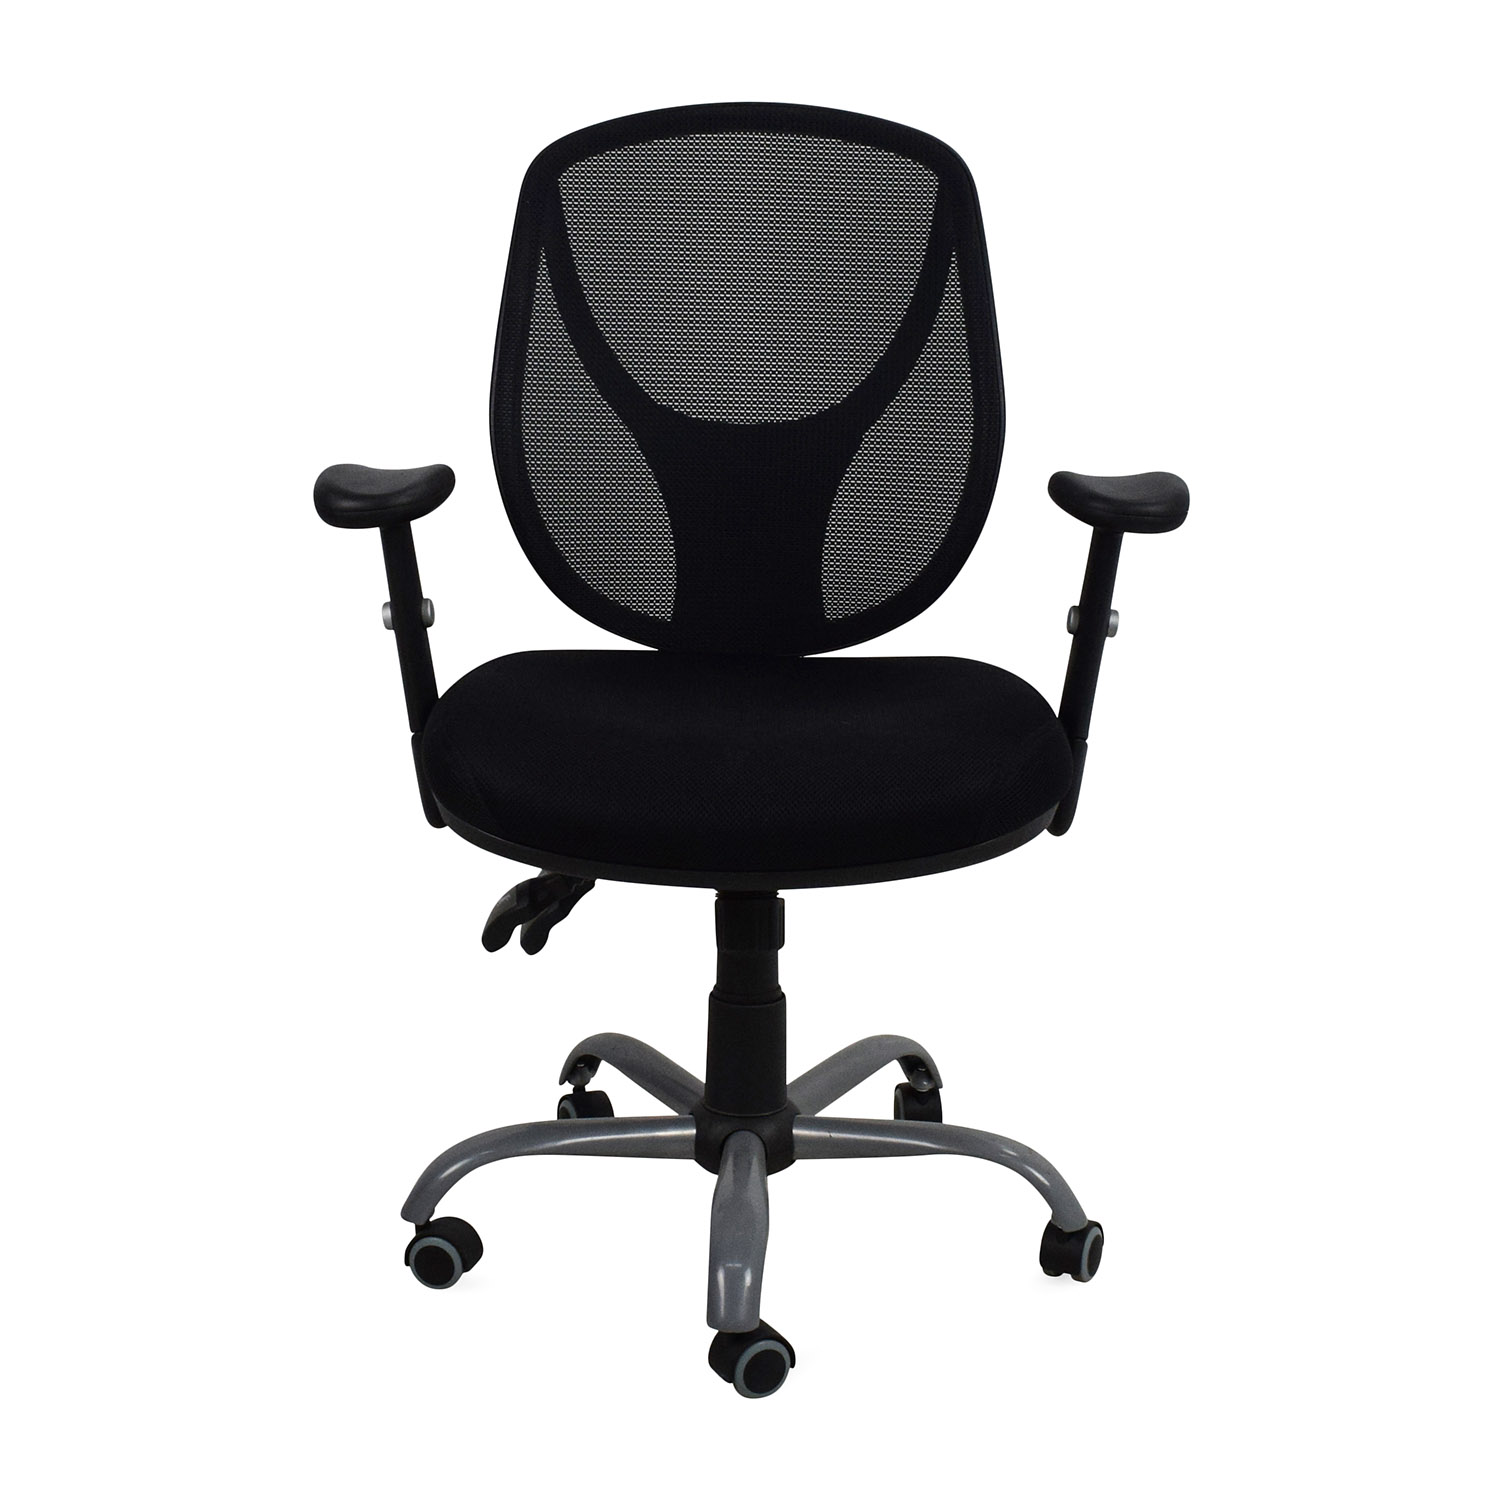 Office Chairs At Staples 75 Off Staples Staples Acadia Ergonomic Mesh Office Chair Chairs